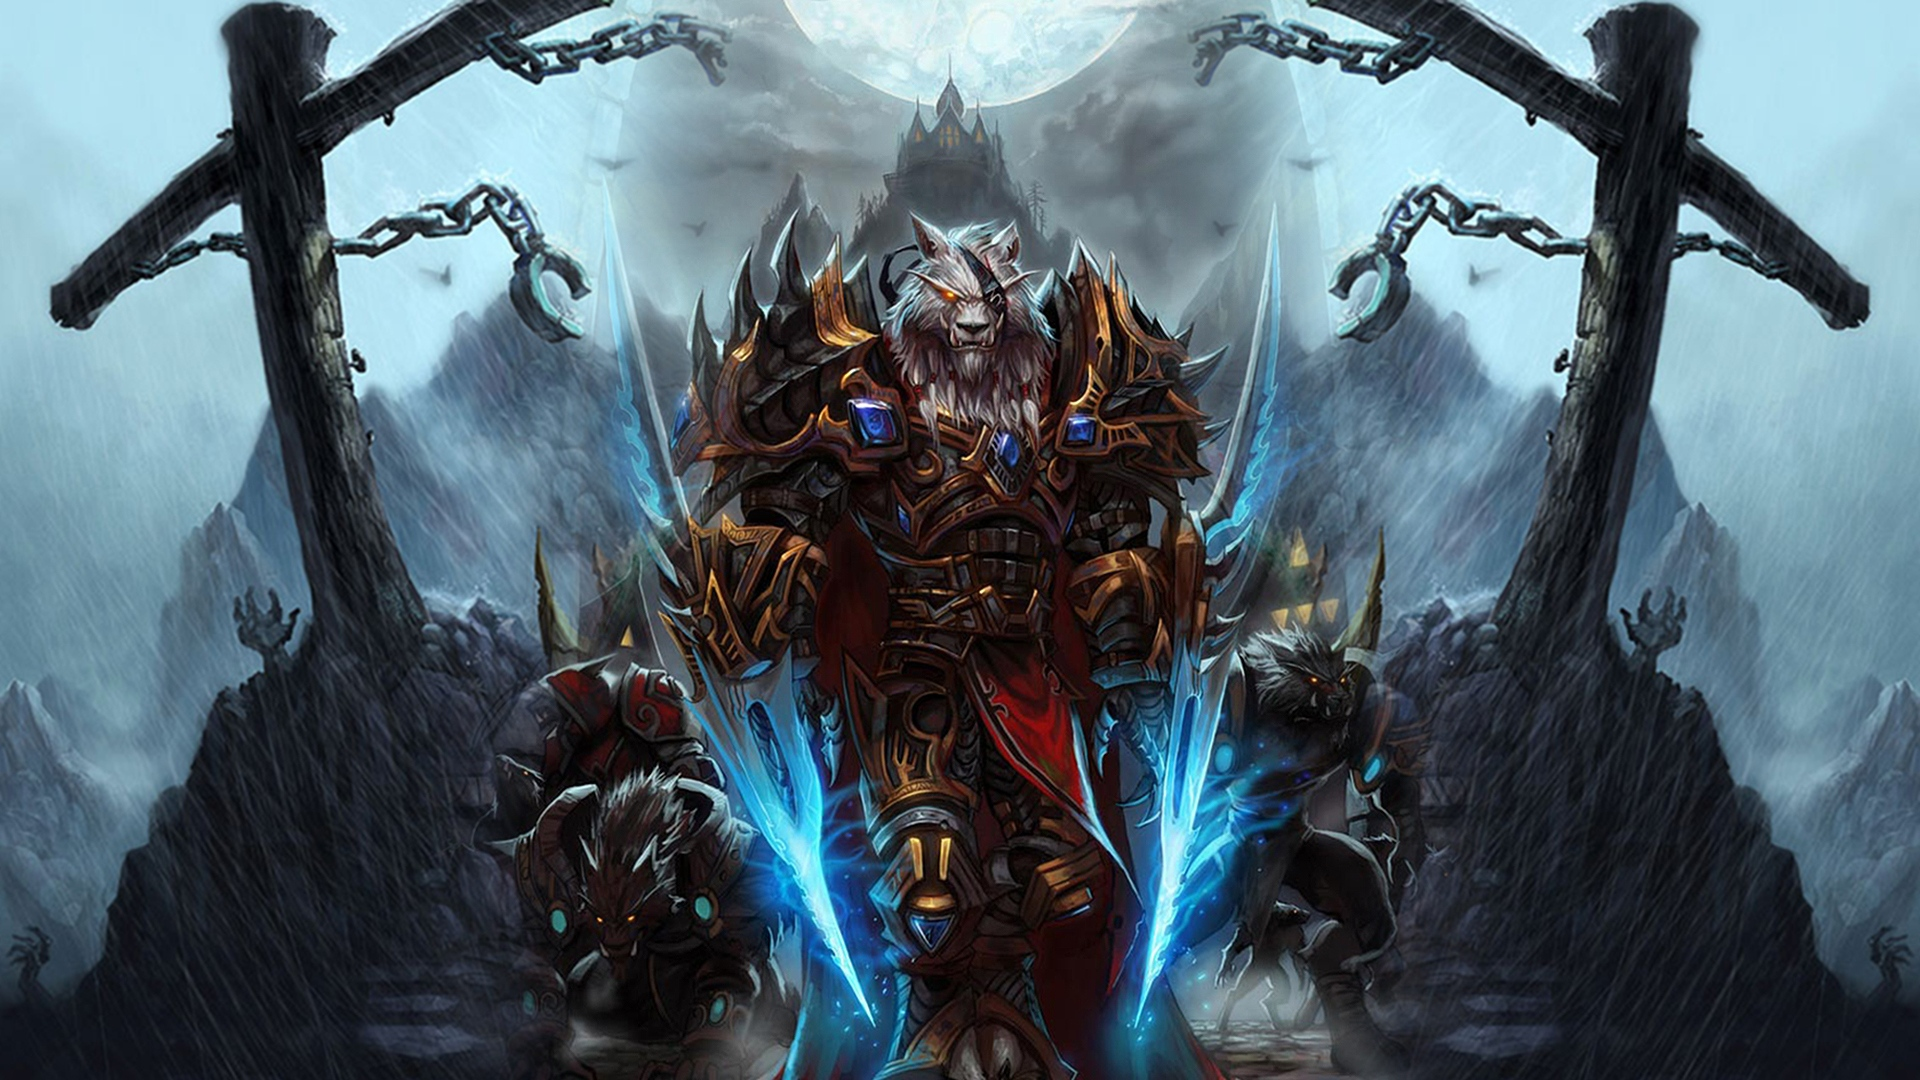 Download Wallpaper 1920x1080 world of warcraft worgen character